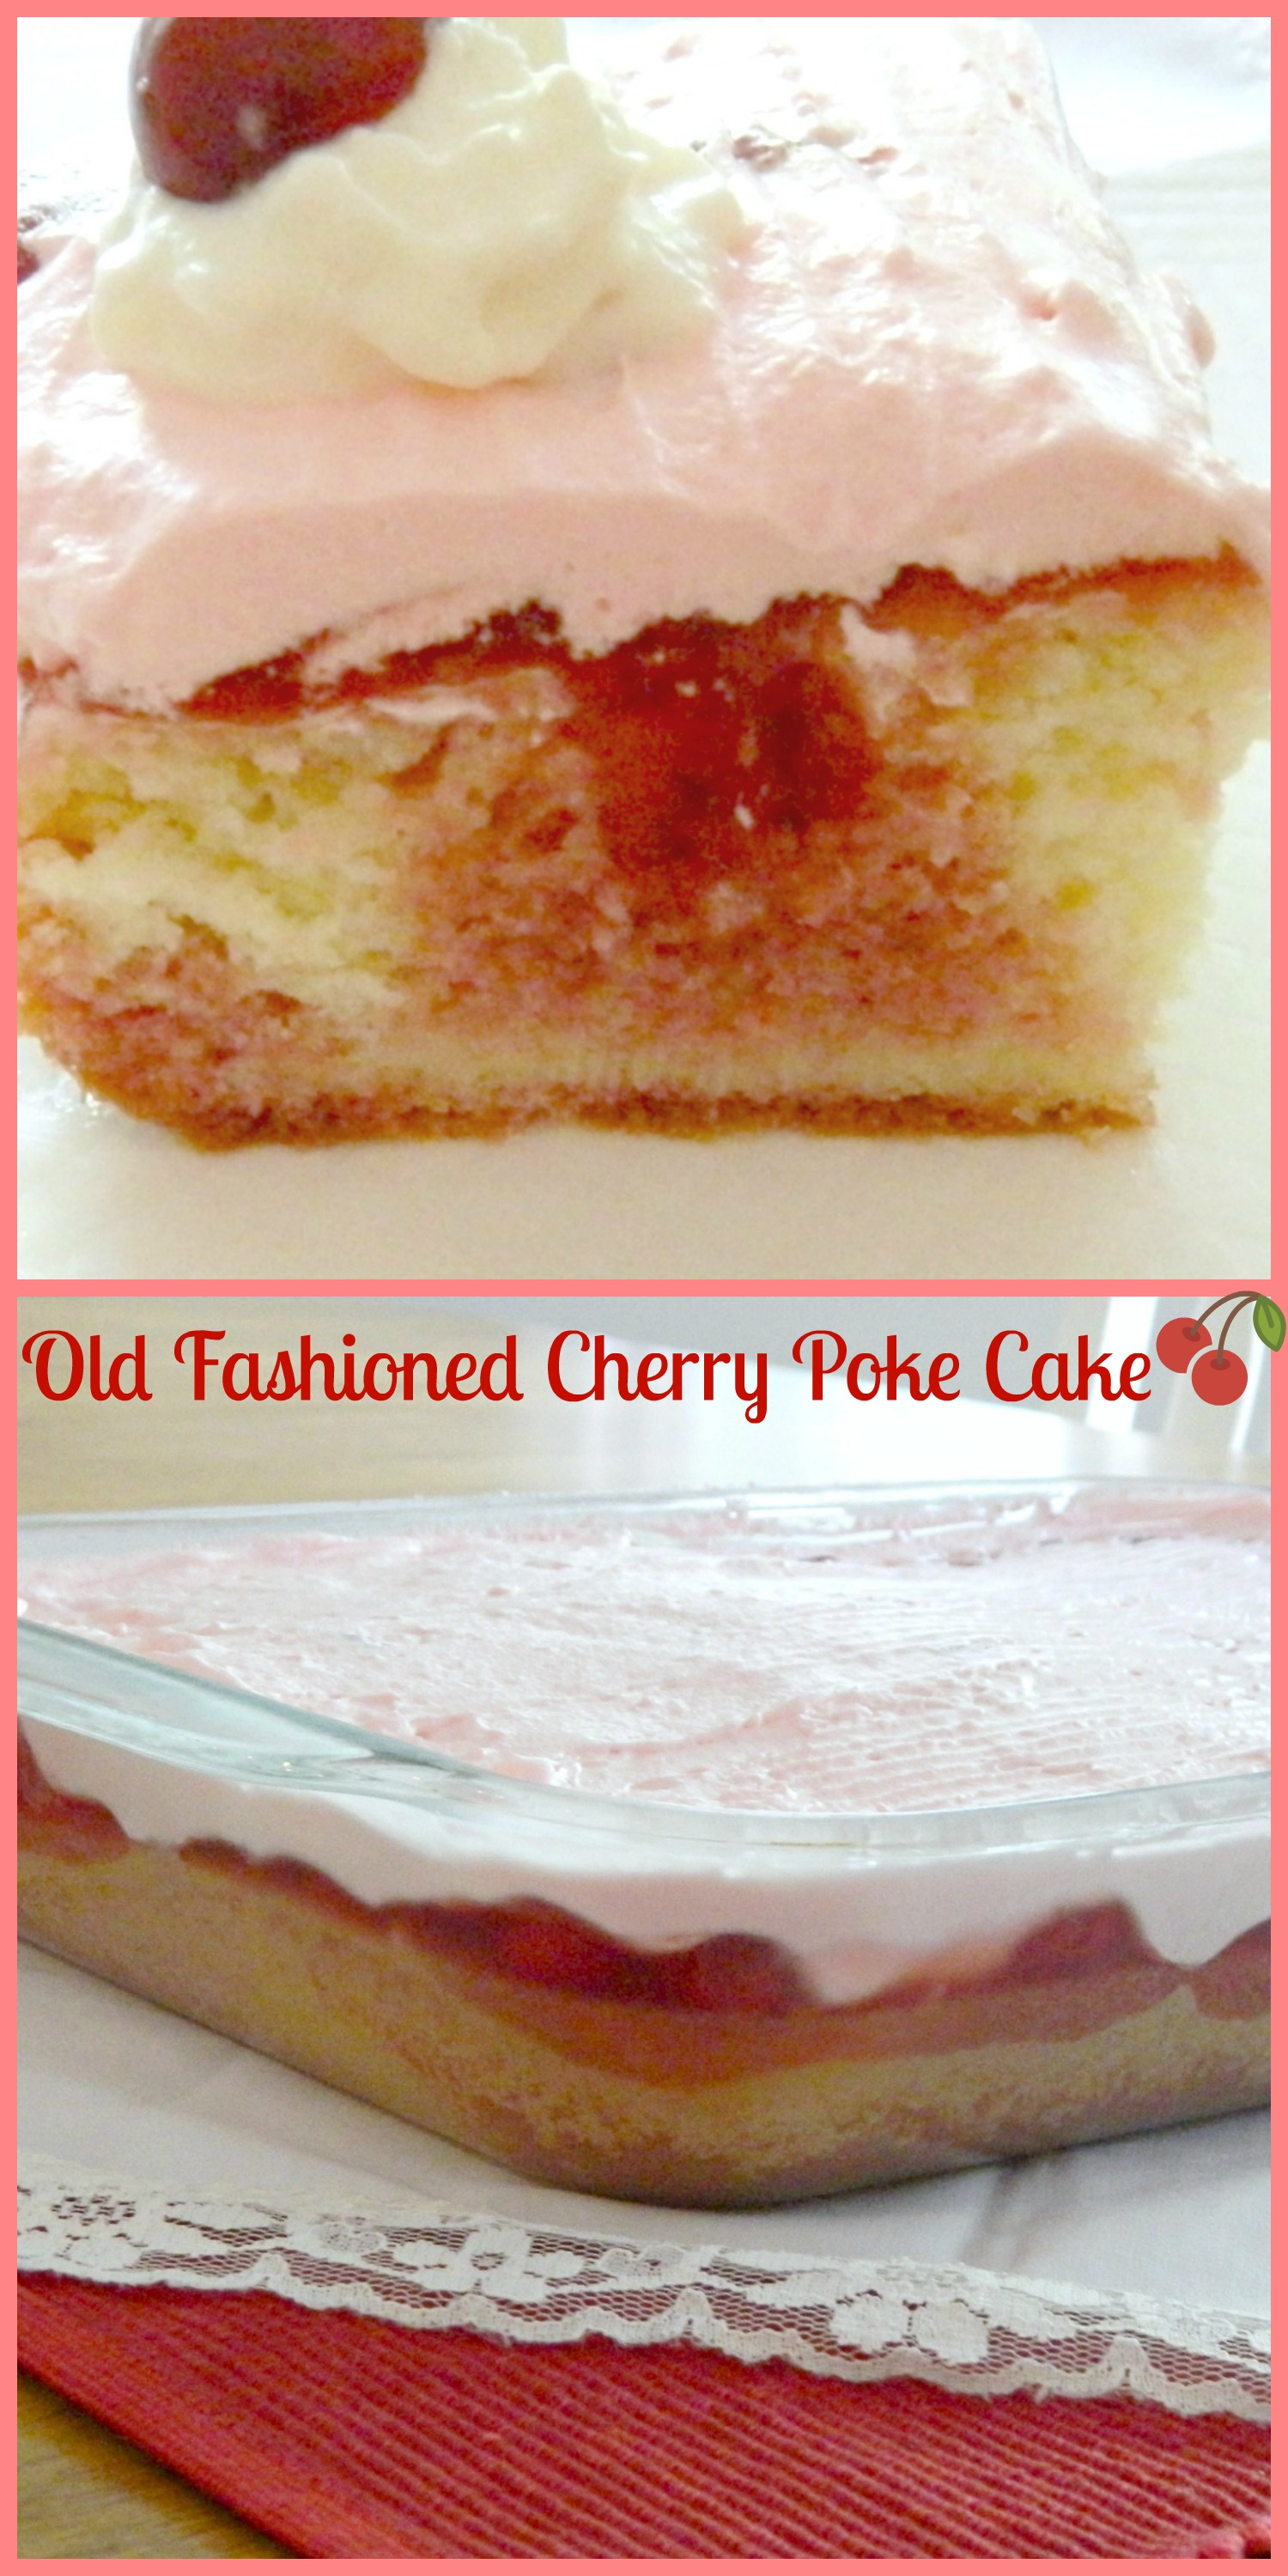 Old-fashioned Cherry Cake Recipes Delia Online 15